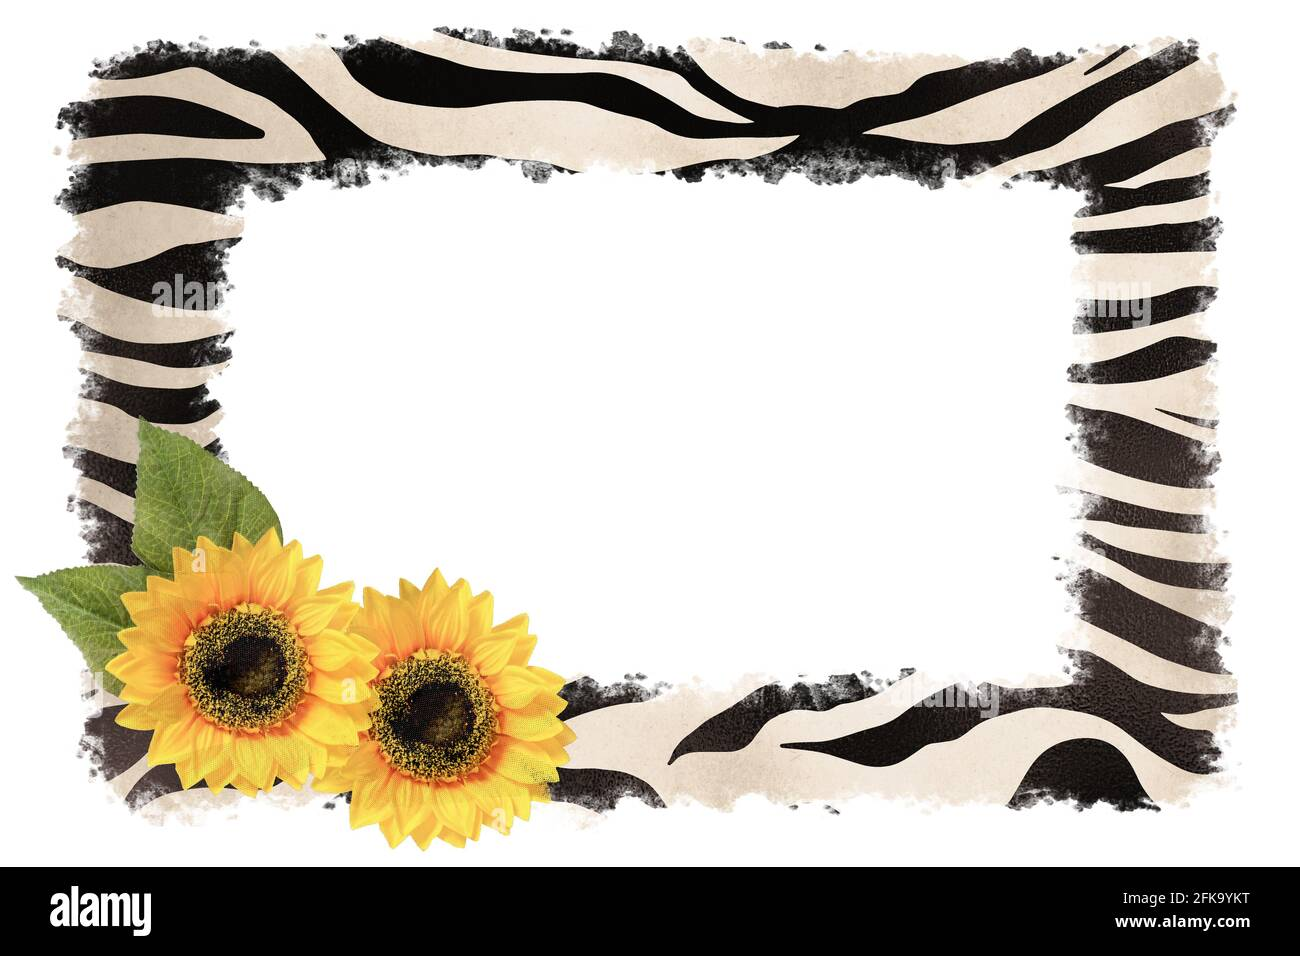 Sunflower frame with animal skin print. Creative collage Stock Photo